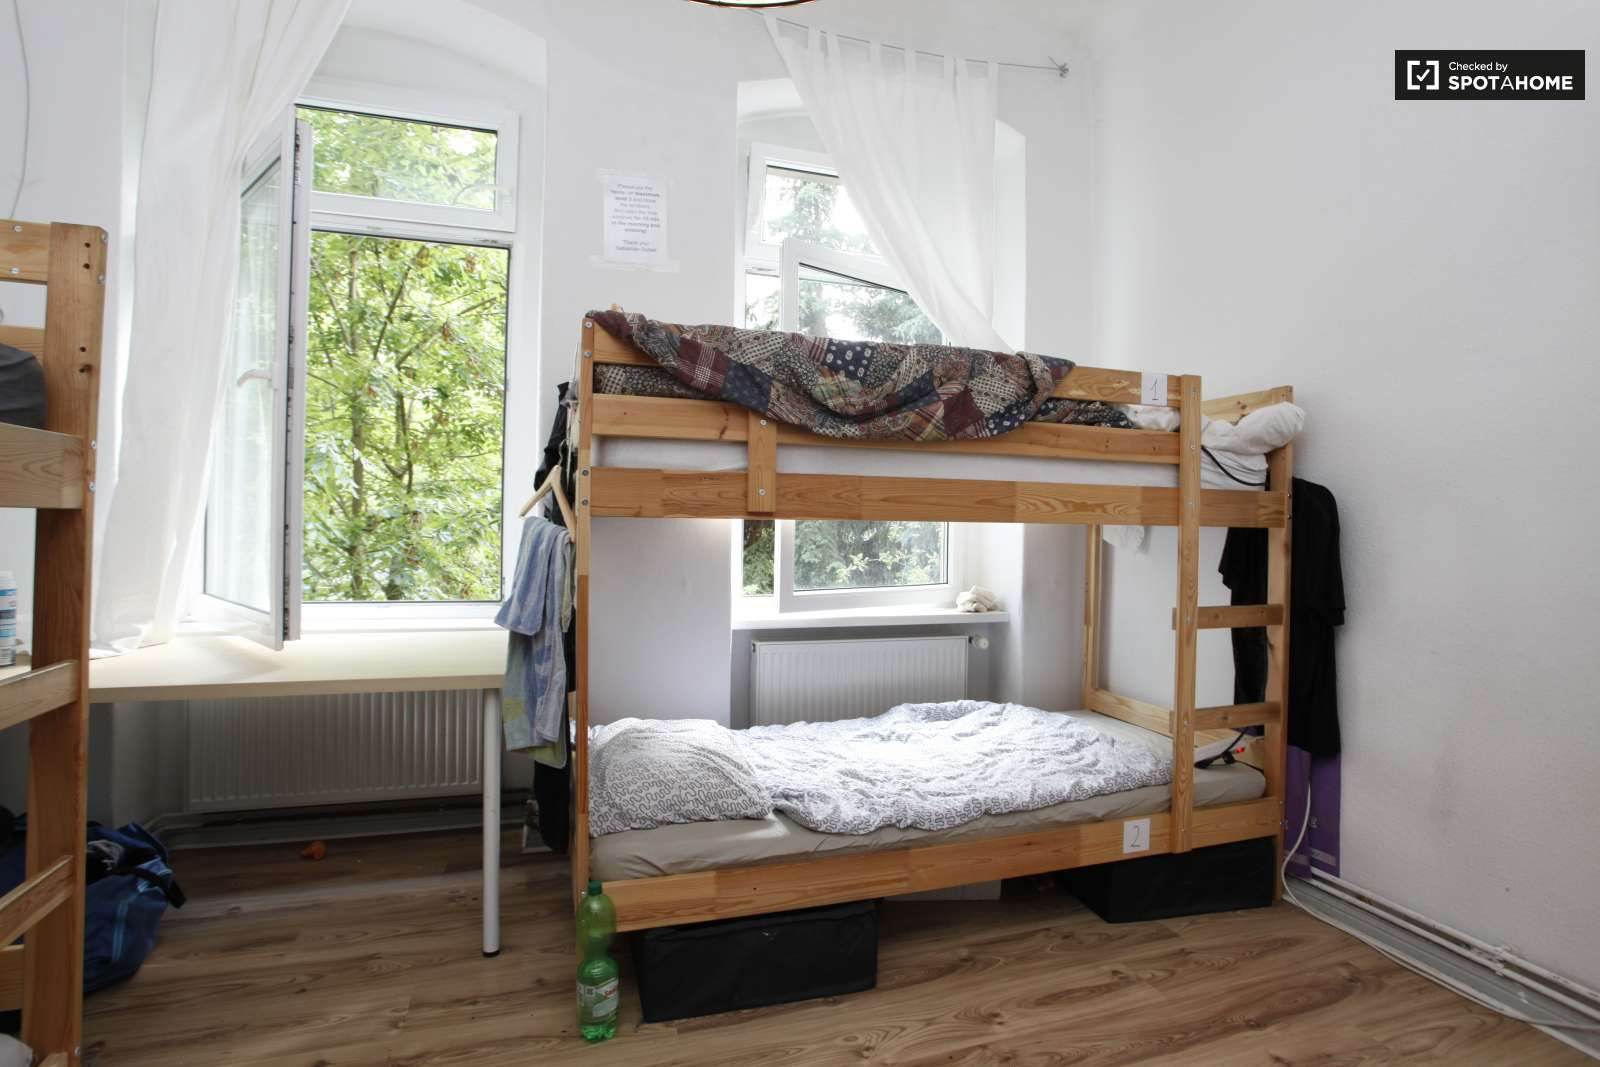 Bunk Beds In Beds For Rent In Shared Rooms In A 2 Bedroom Apartment In Treptow Kopenick Room For Rent Berlin